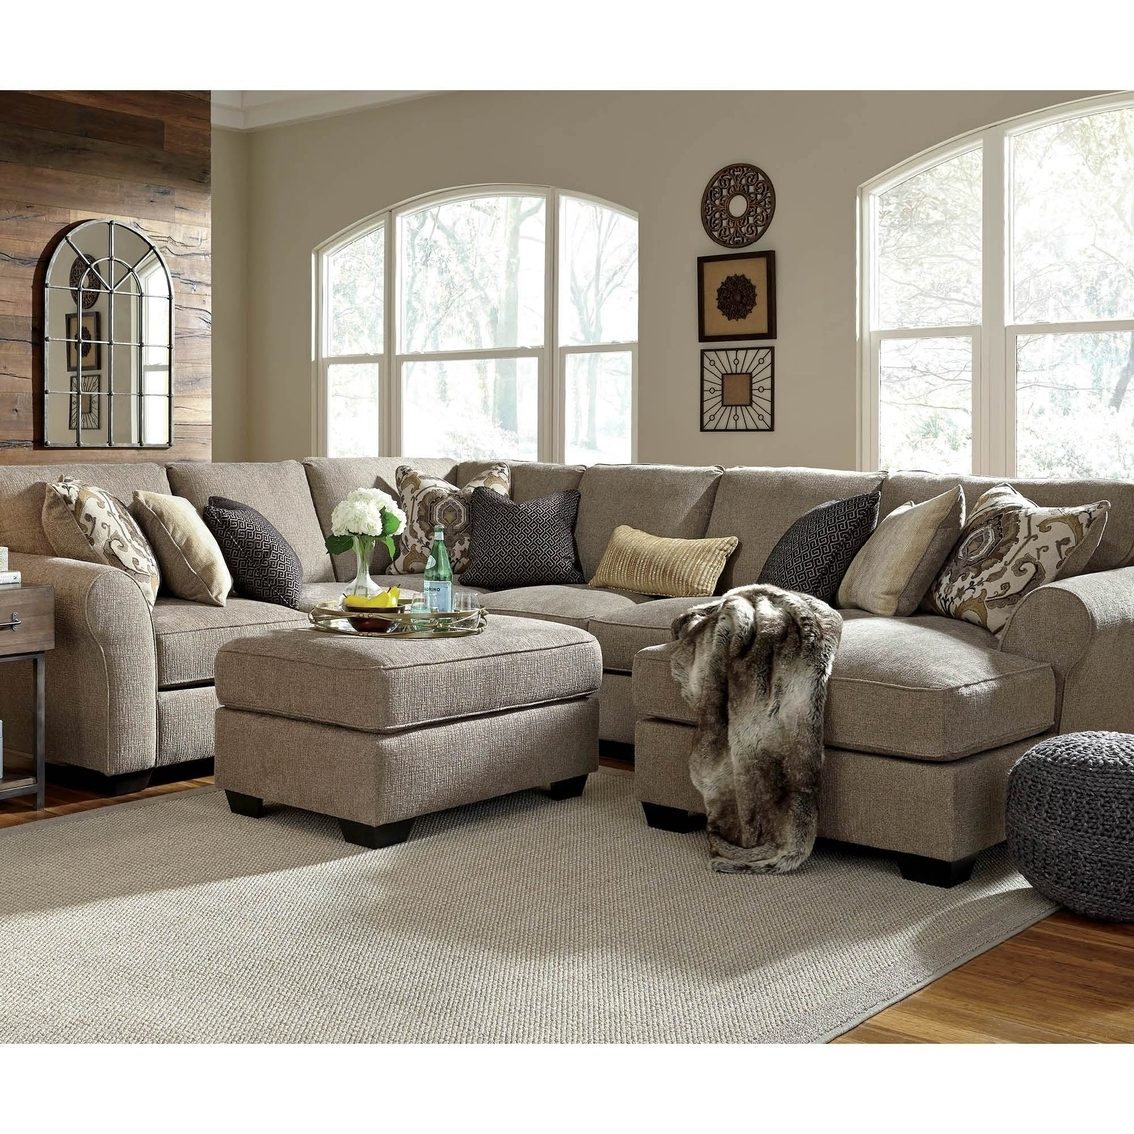 Laf Sofa Raf Loveseat | Baci Living Room Within Turdur 2 Piece Sectionals With Raf Loveseat (View 8 of 25)